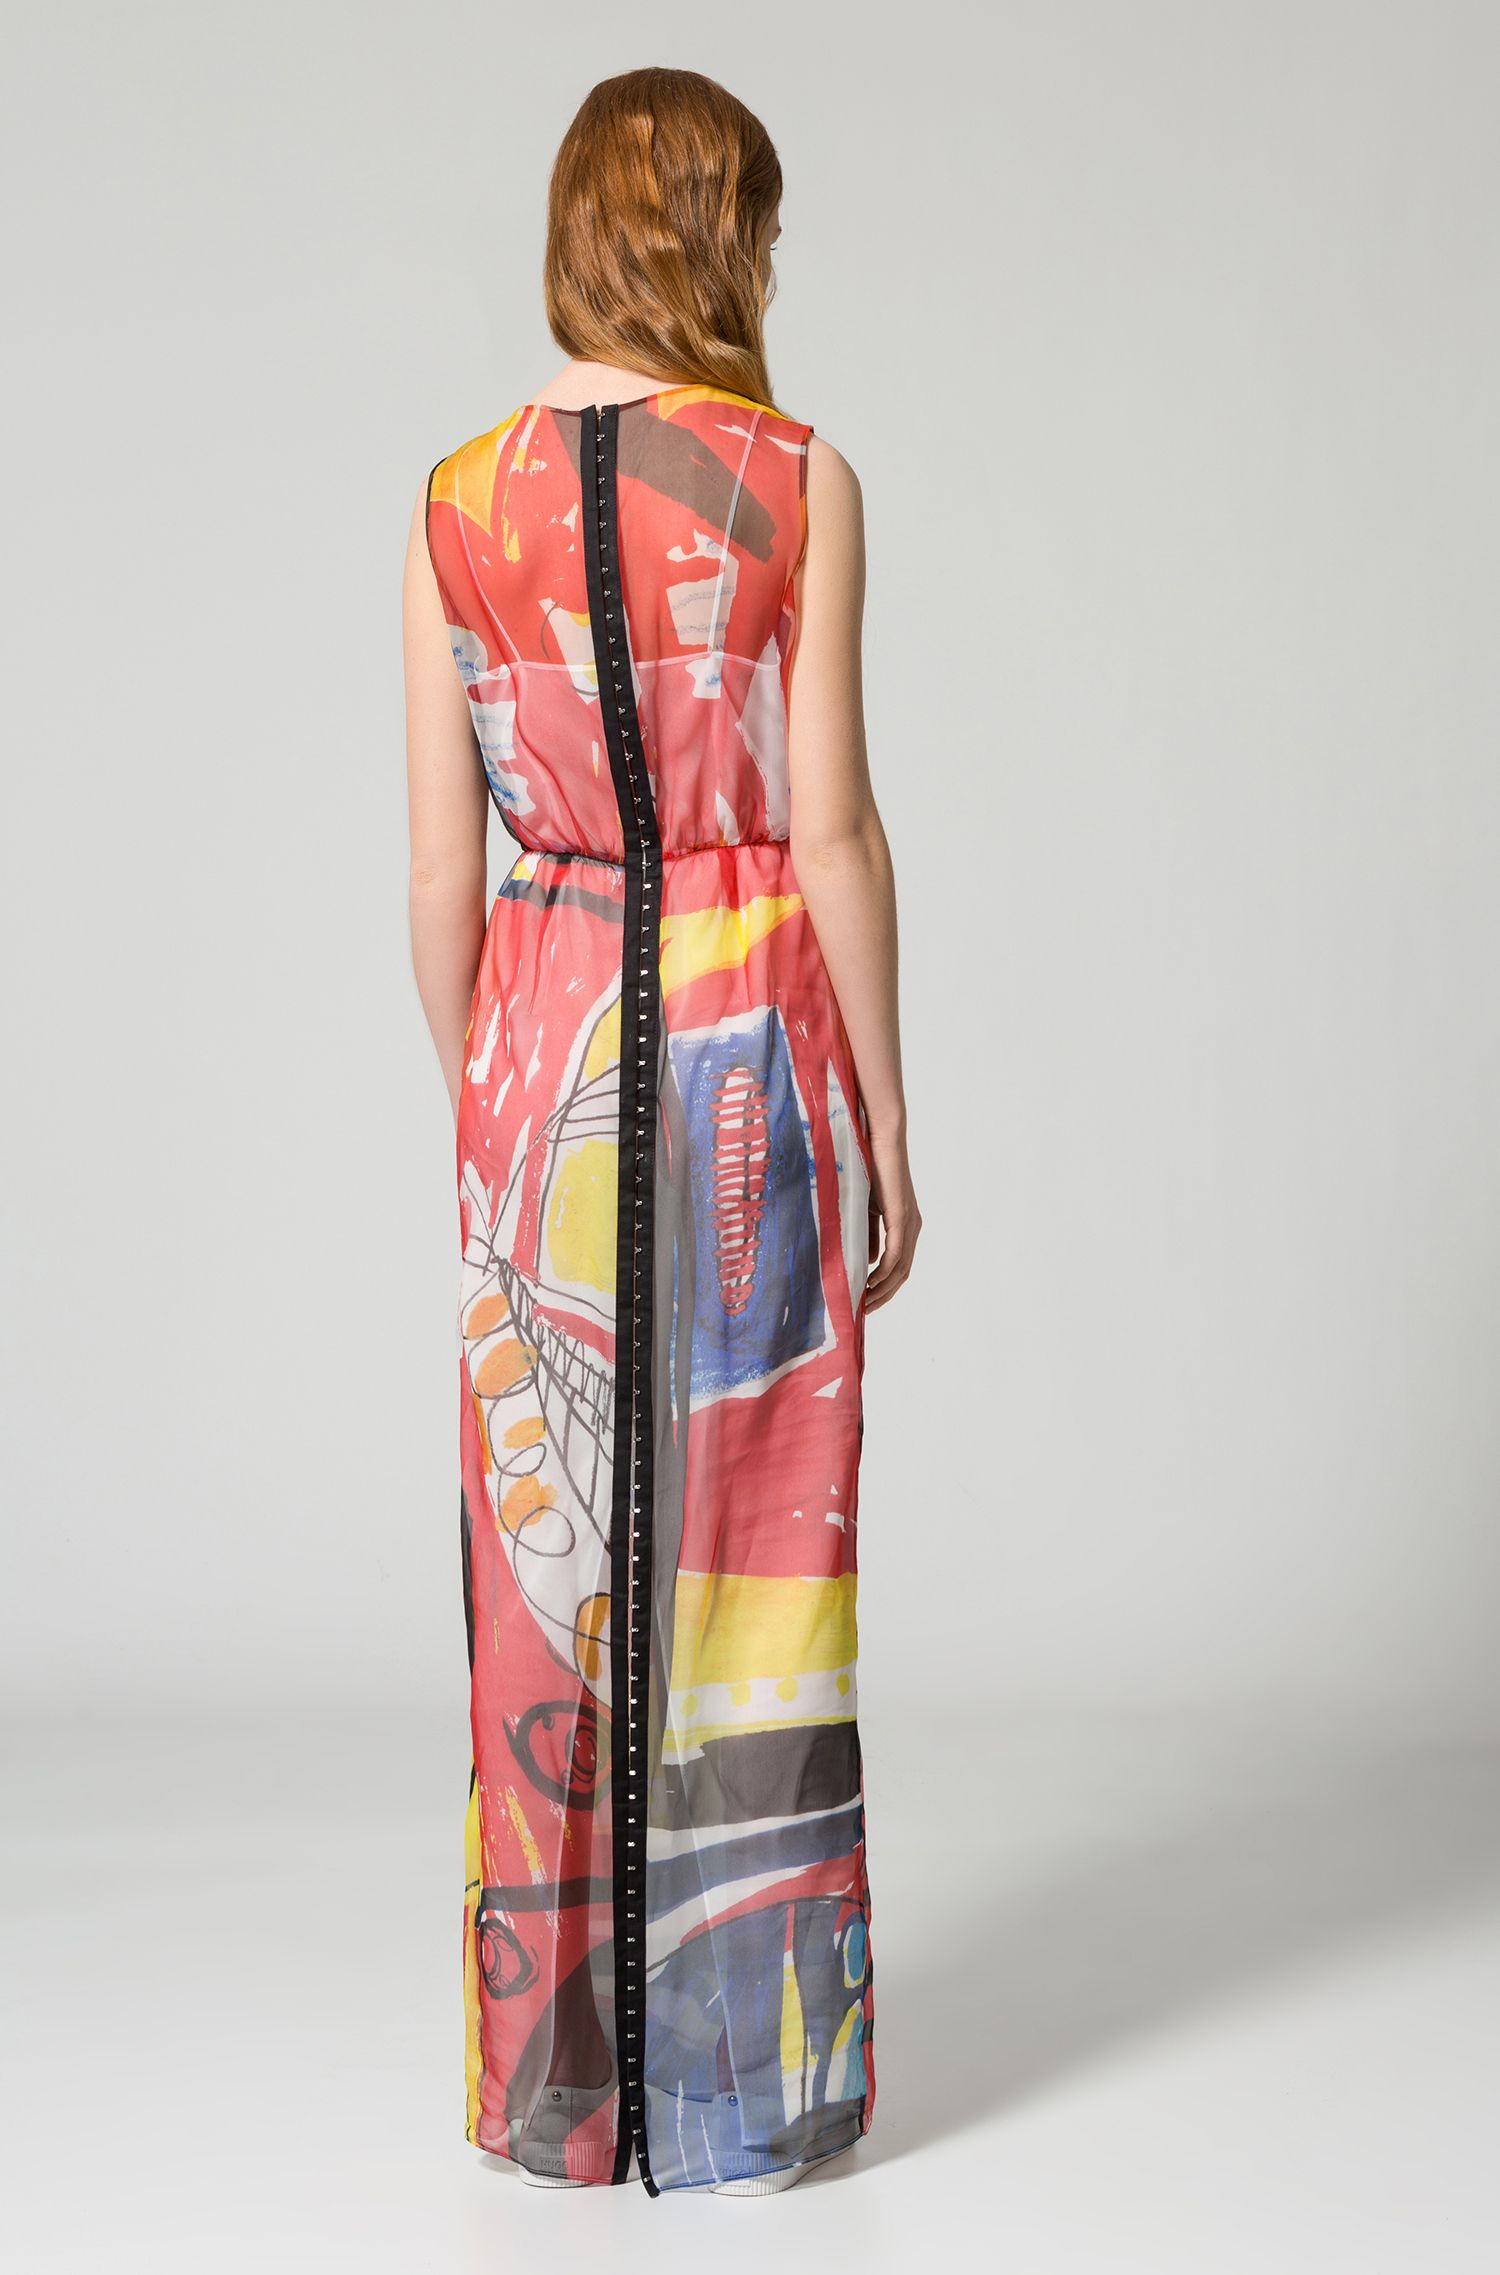 Printed Silk Dress | Koluni, Patterned